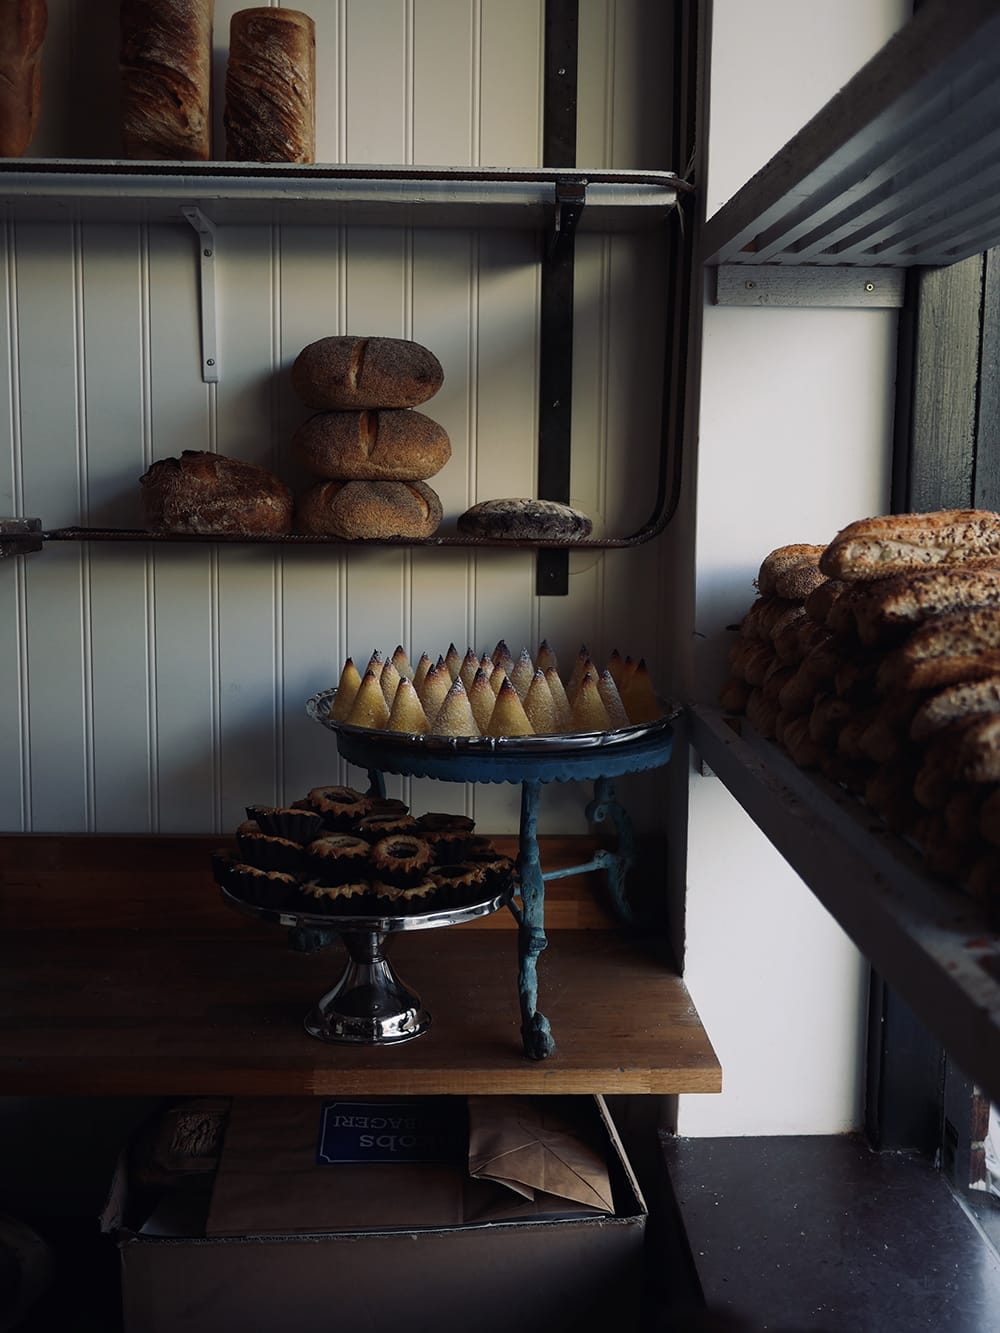 A shaded interior of bakery with a bread and cookies placed on trays and shelves. Malmö